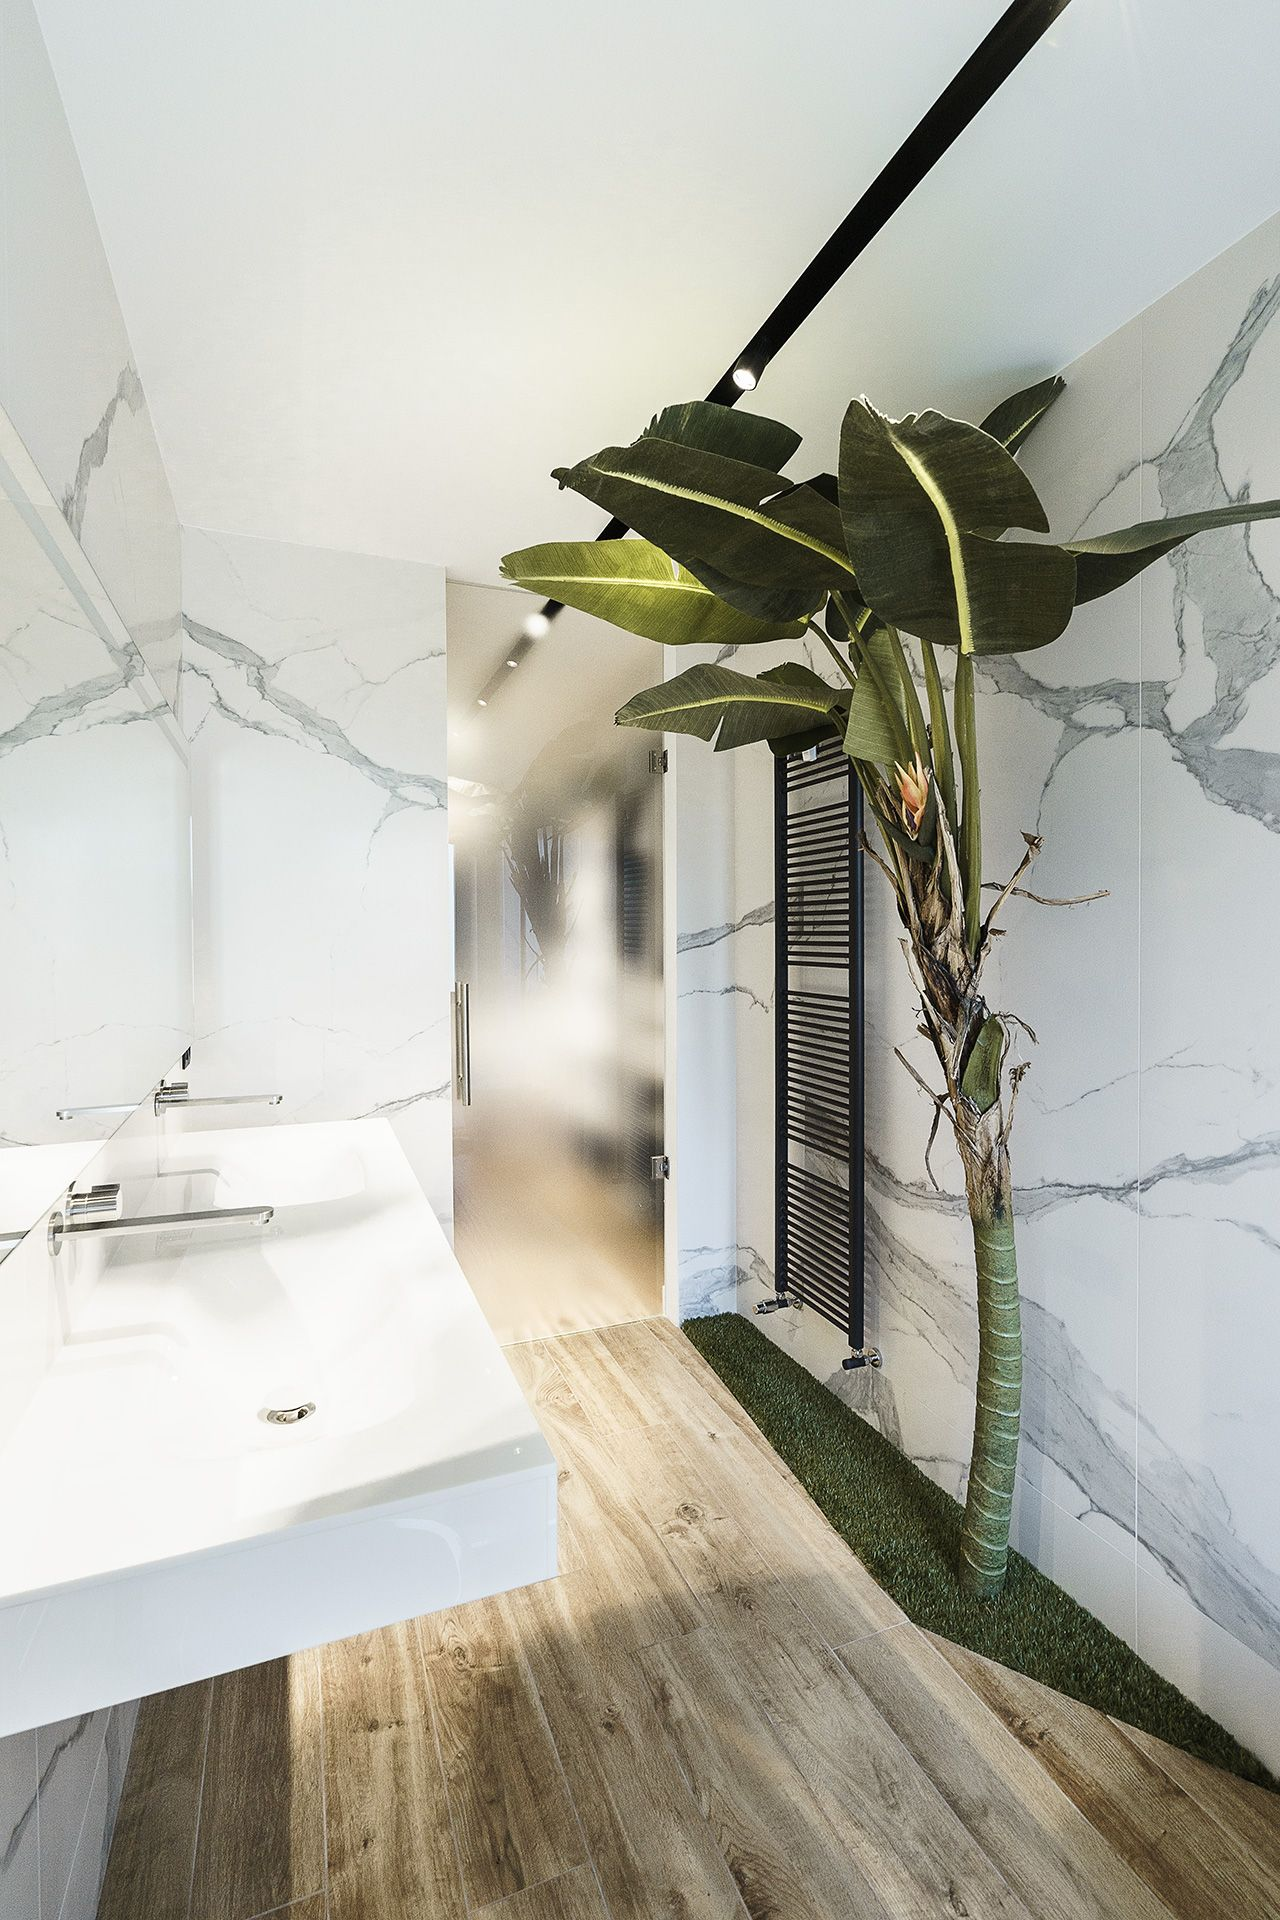 The banana tree is a whimsical addition to the bathroom